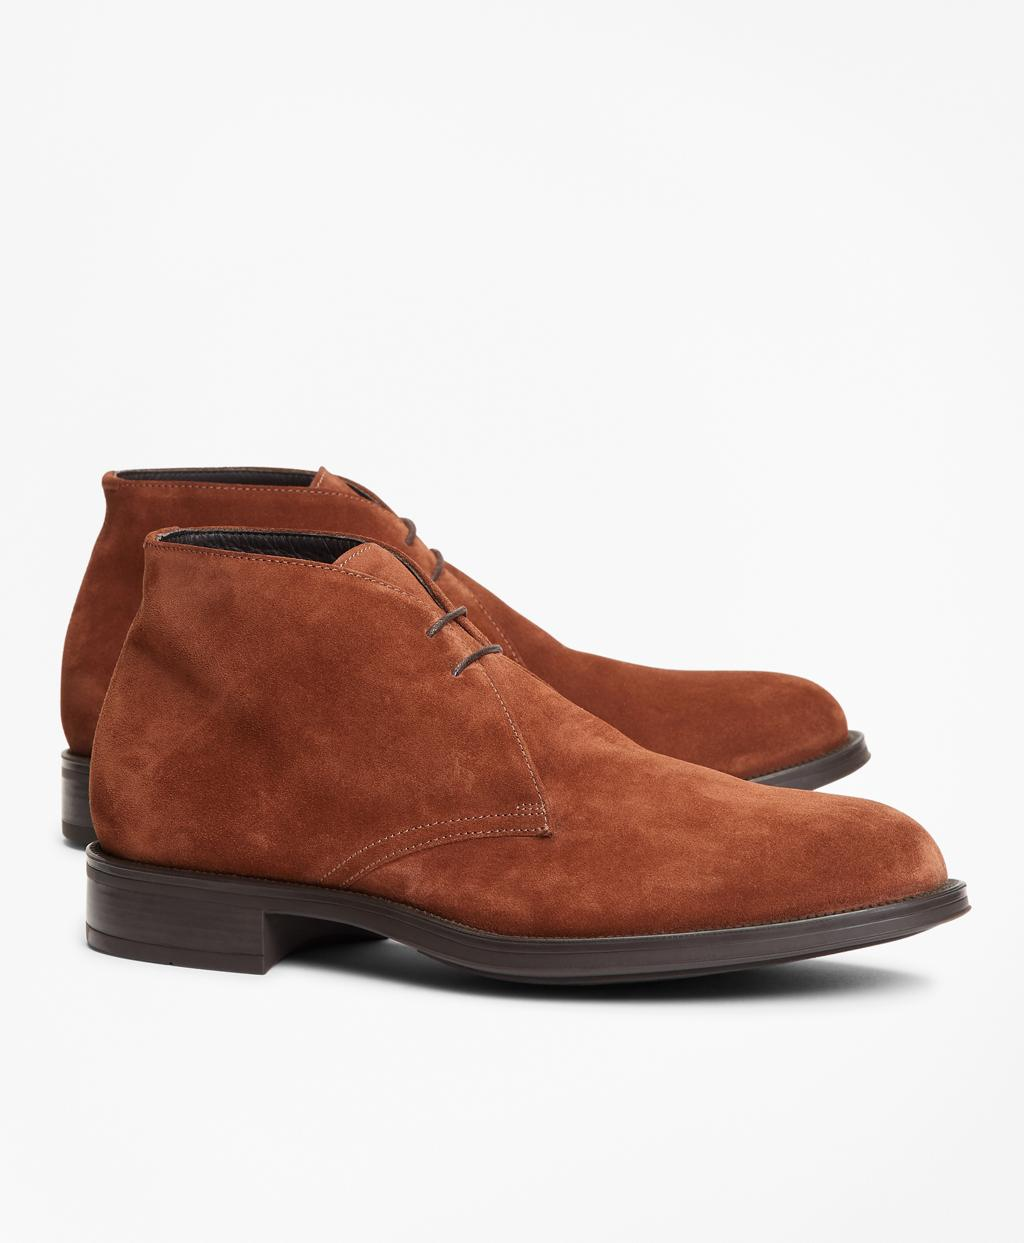 bf329984171 Brooks Brothers 1818 Footwear Suede Chukka Boots in Brown for Men - Lyst